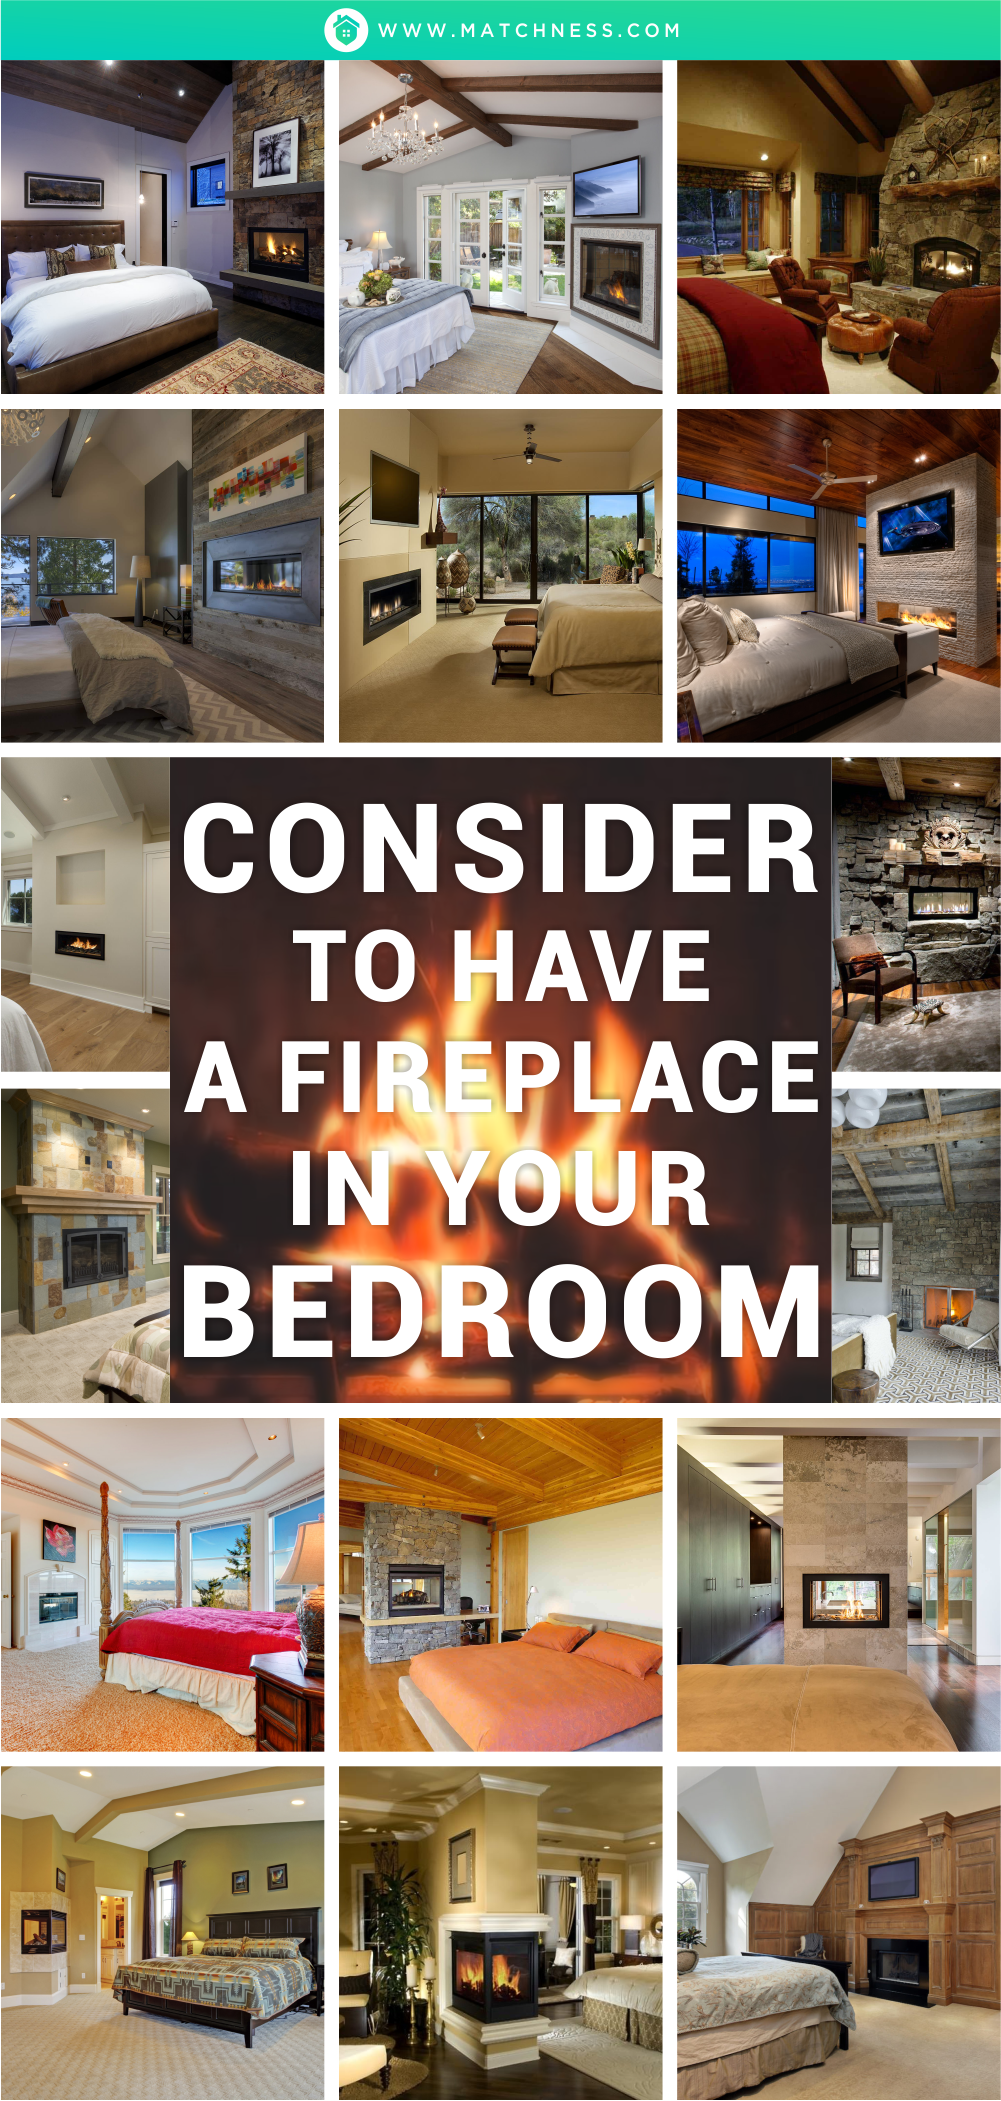 Consider-to-have-a-fireplace-in-your-bedroom1